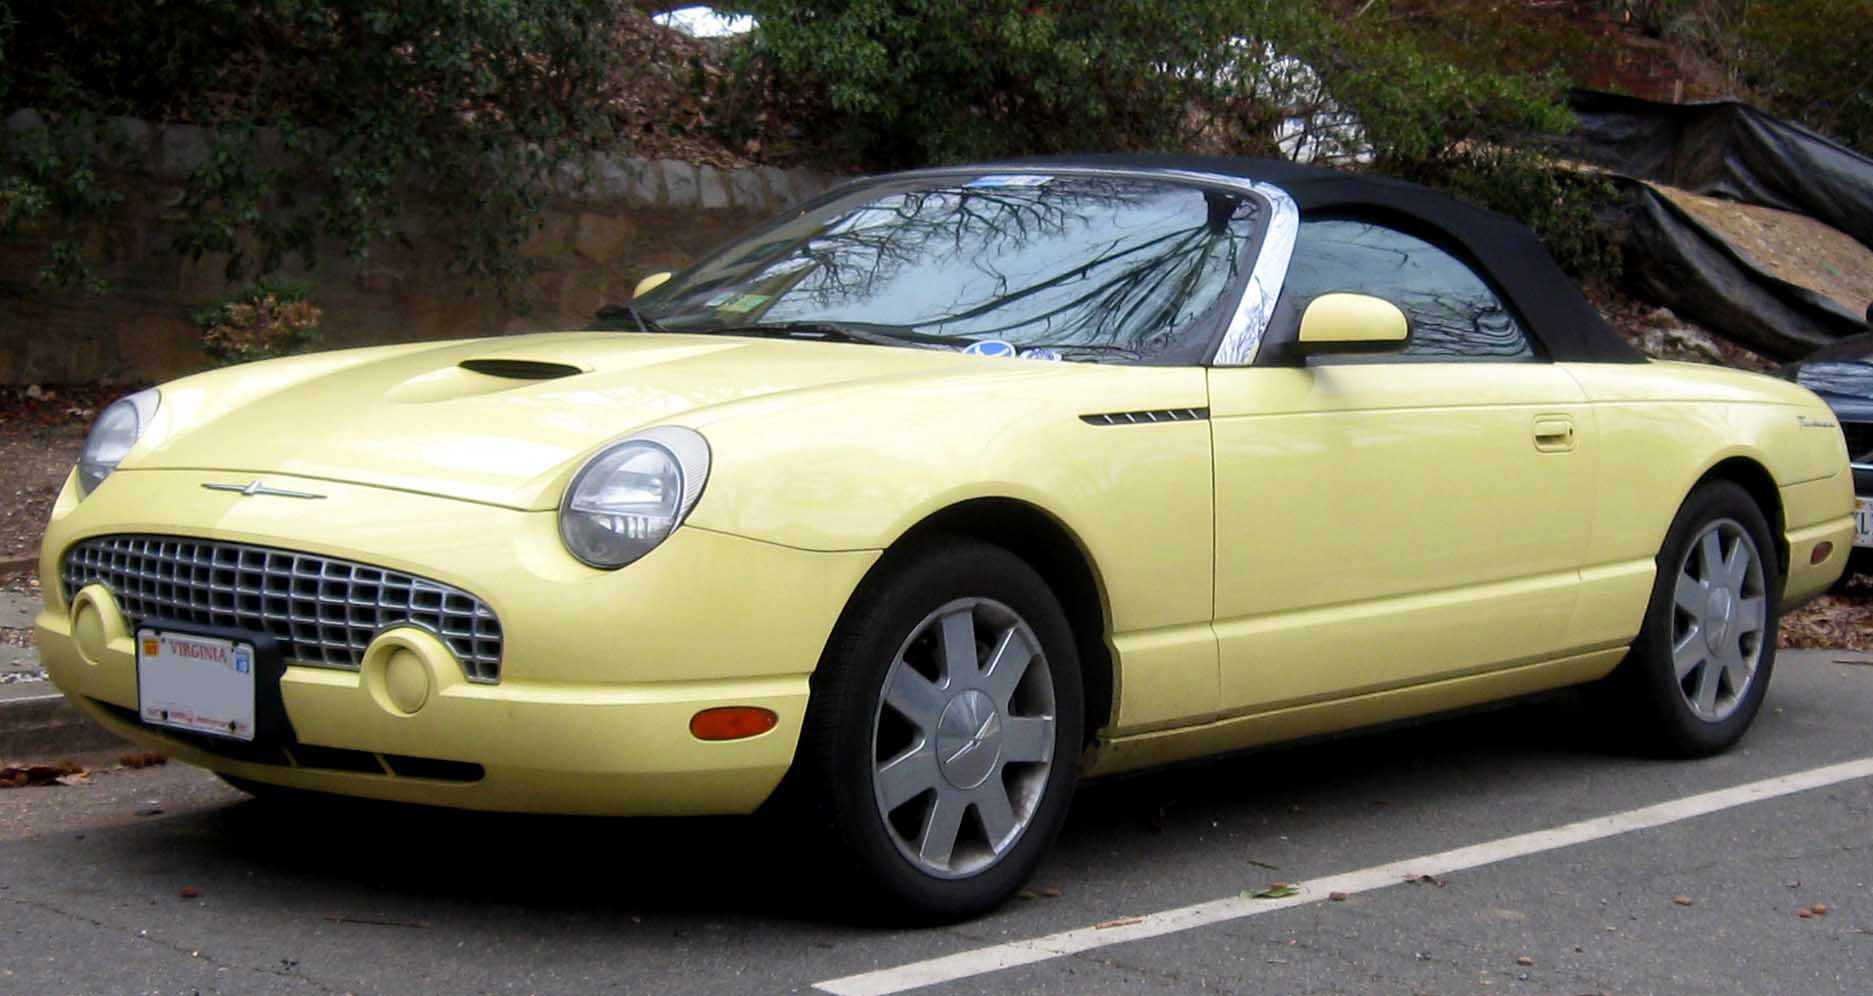 Ford thunderbird eleventh generation wikipedia